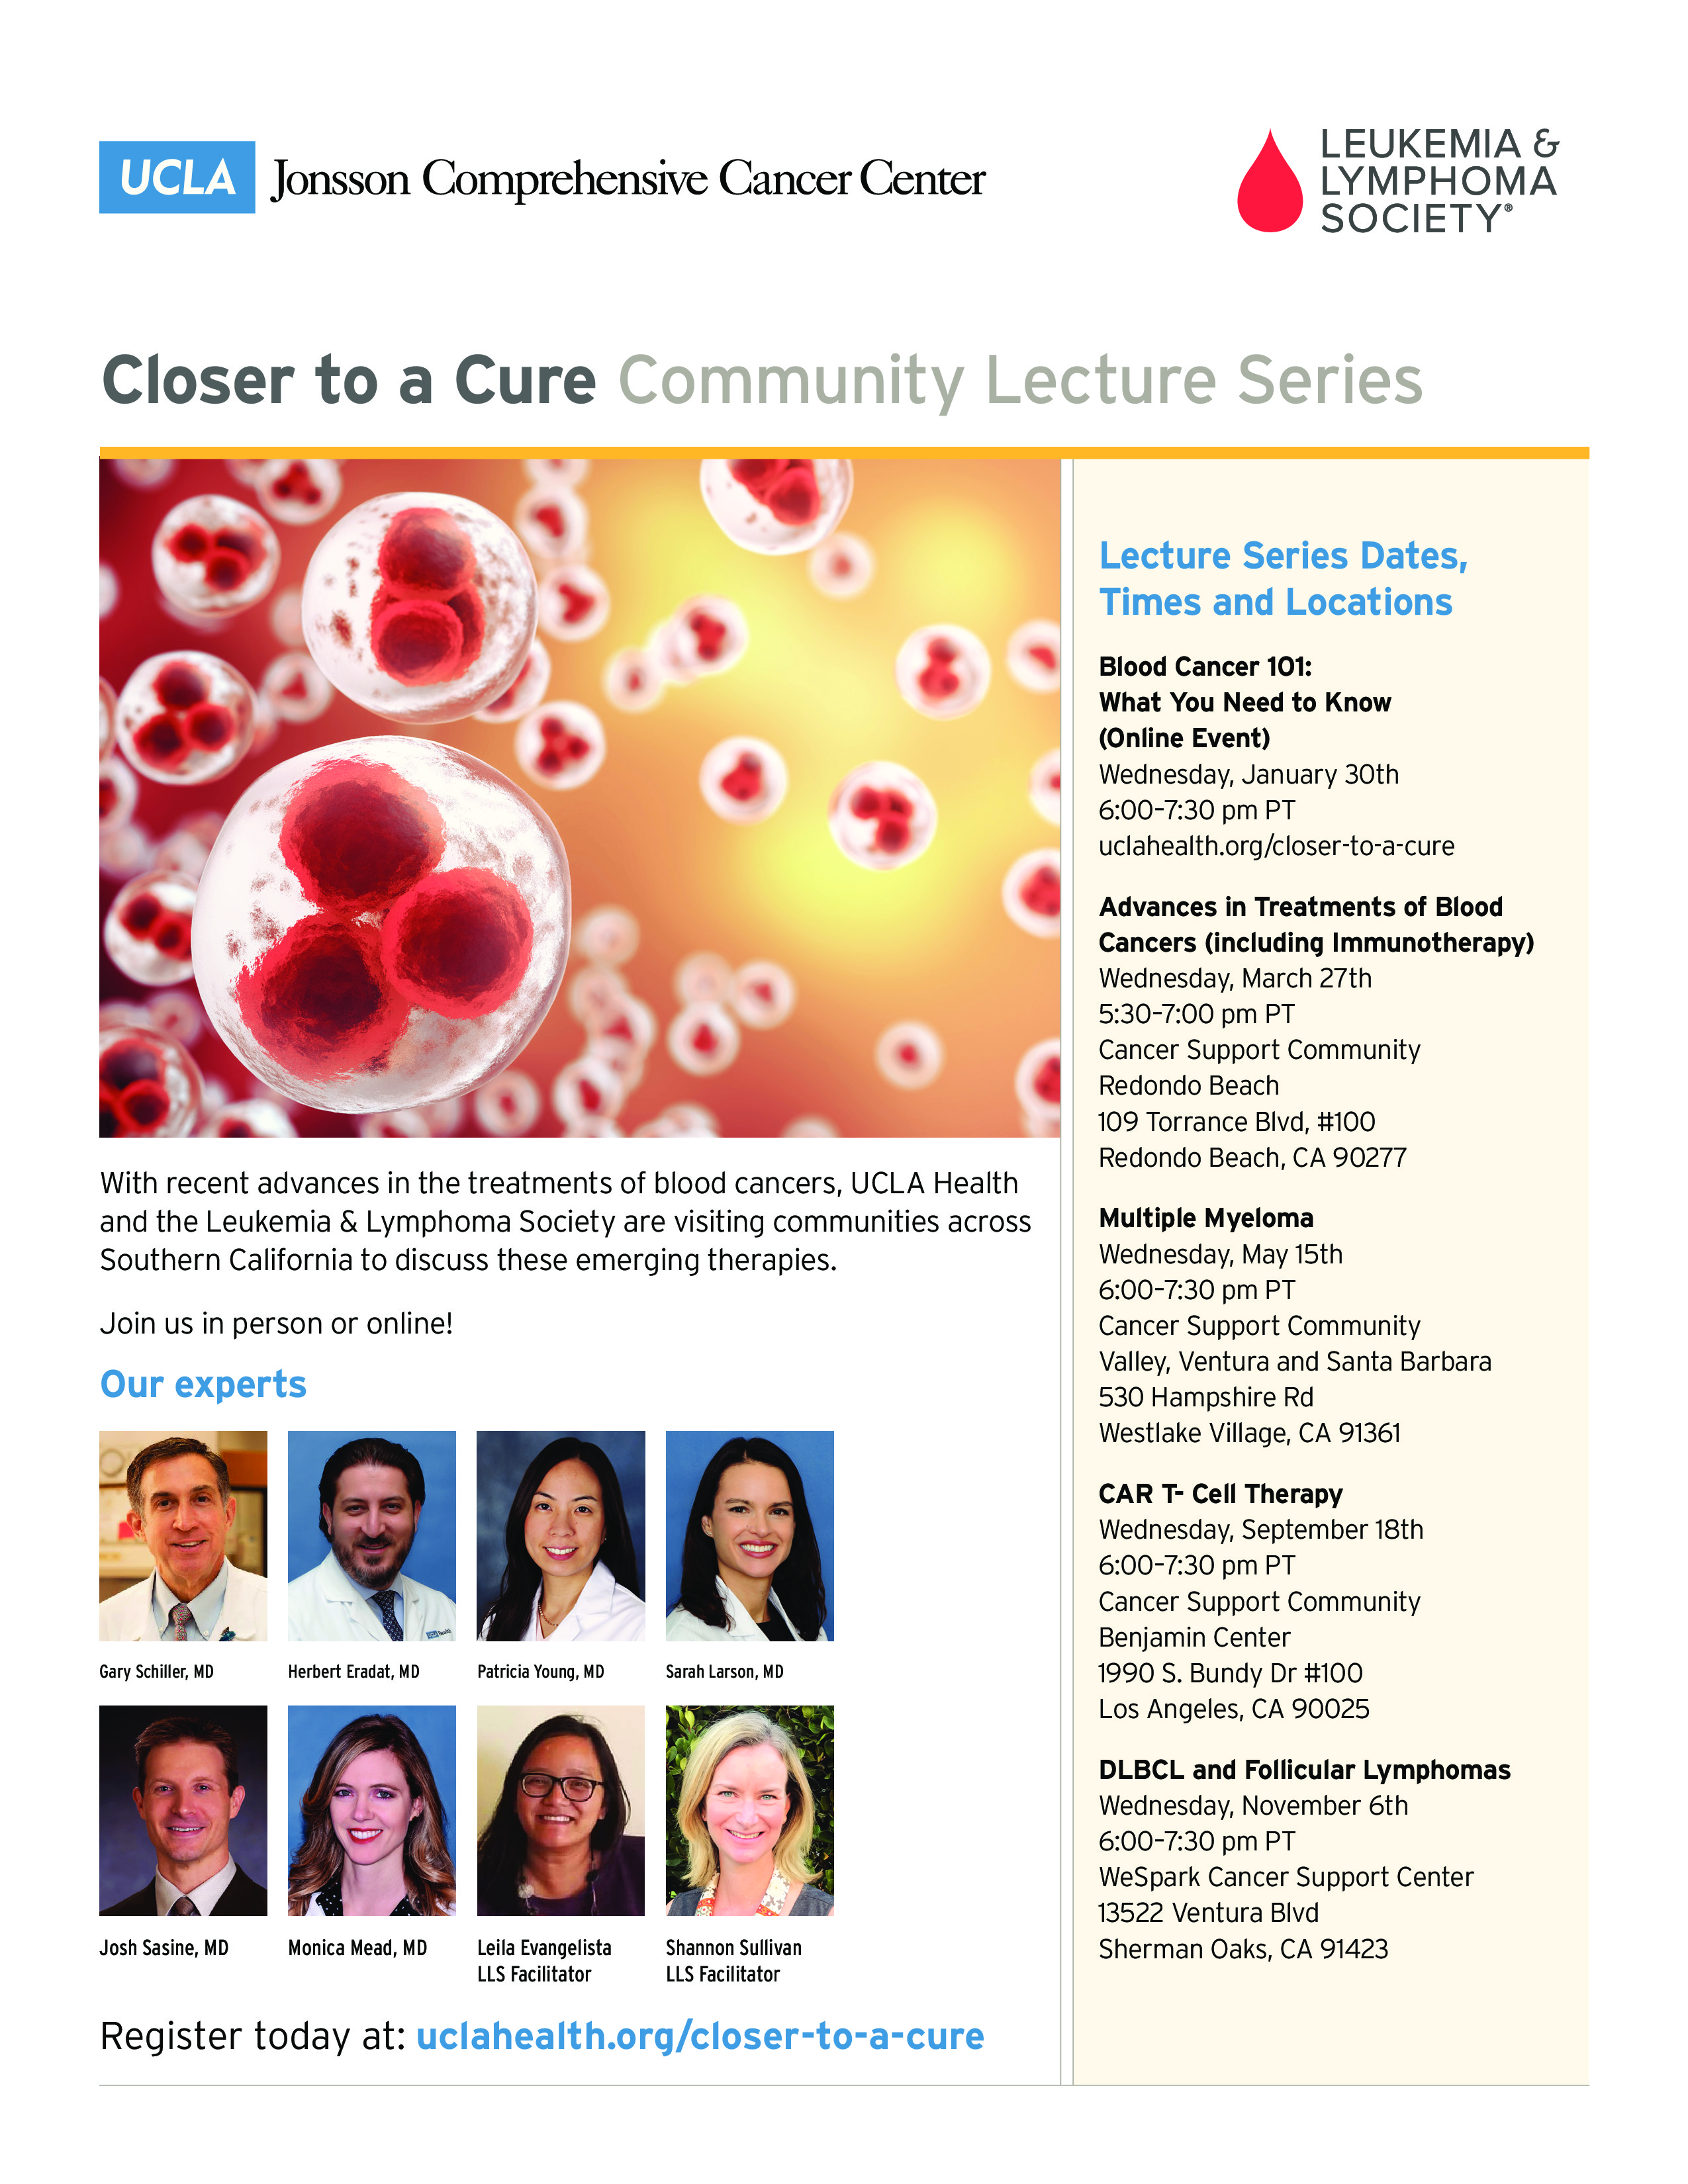 Closer to a Cure Lecture Series: Multiple Myeloma | Leukemia